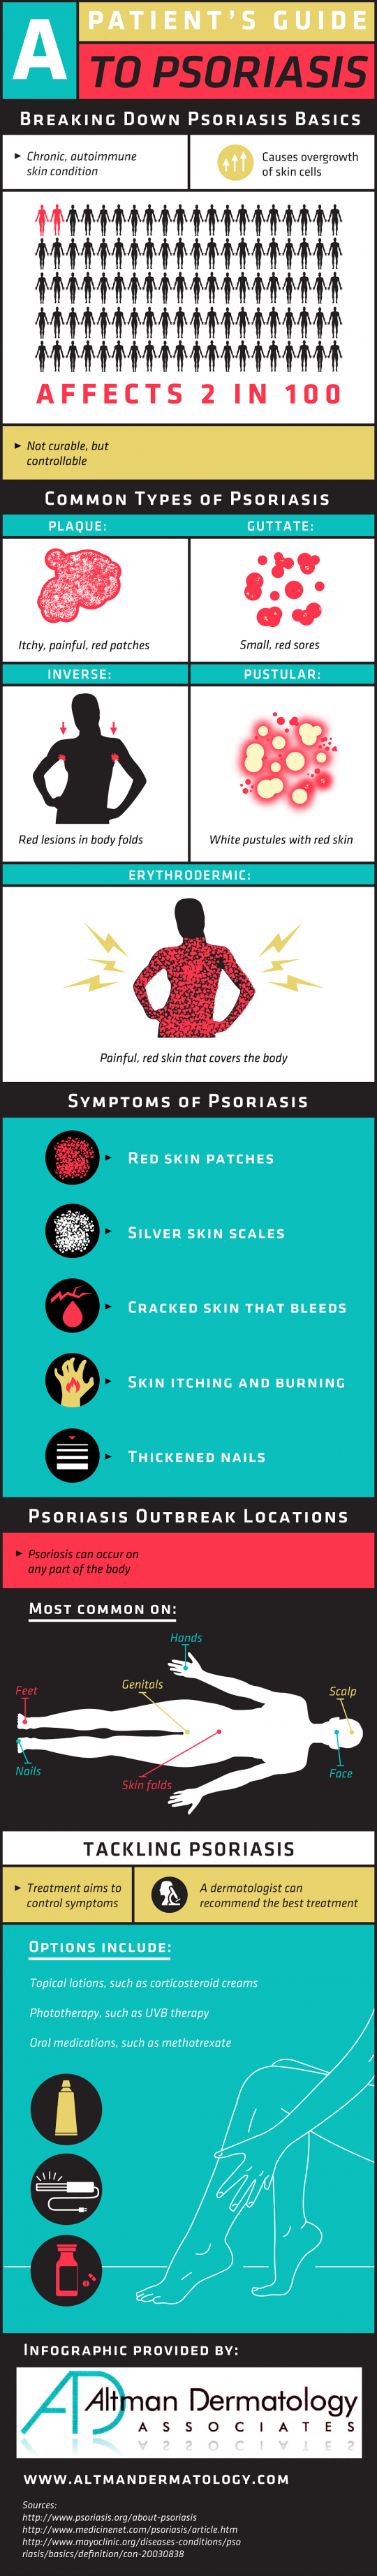 A Patient's Guide to Psoriasis